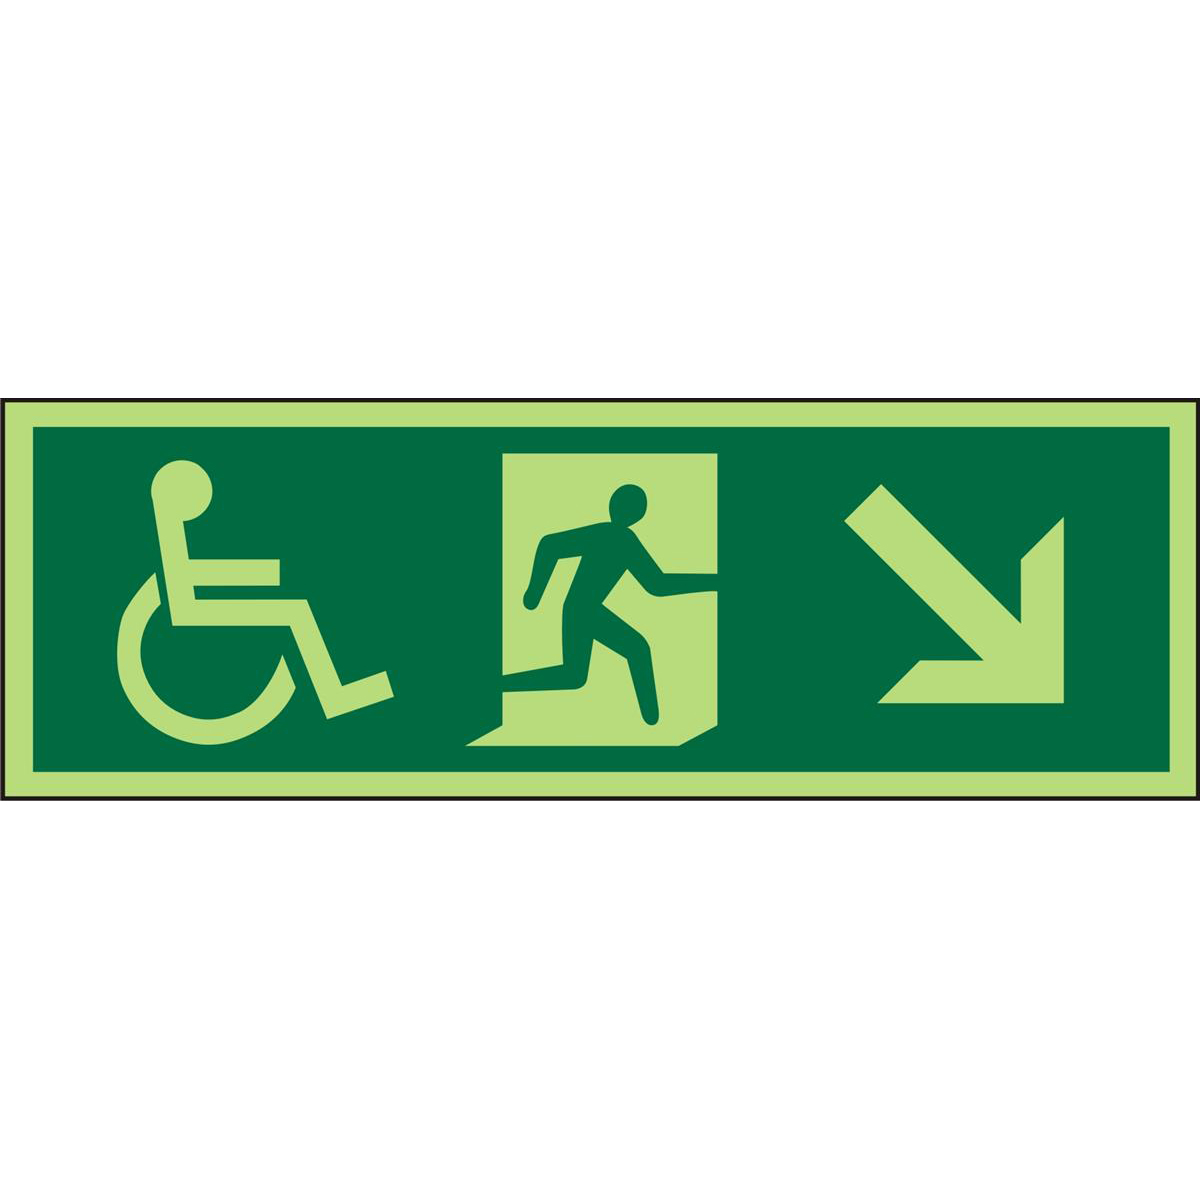 Photol Exit Sign 2mm Wheelchair Picto/Man run left Arrow left Ref PDSP066450x150 *Up to 10Day Leadtime*